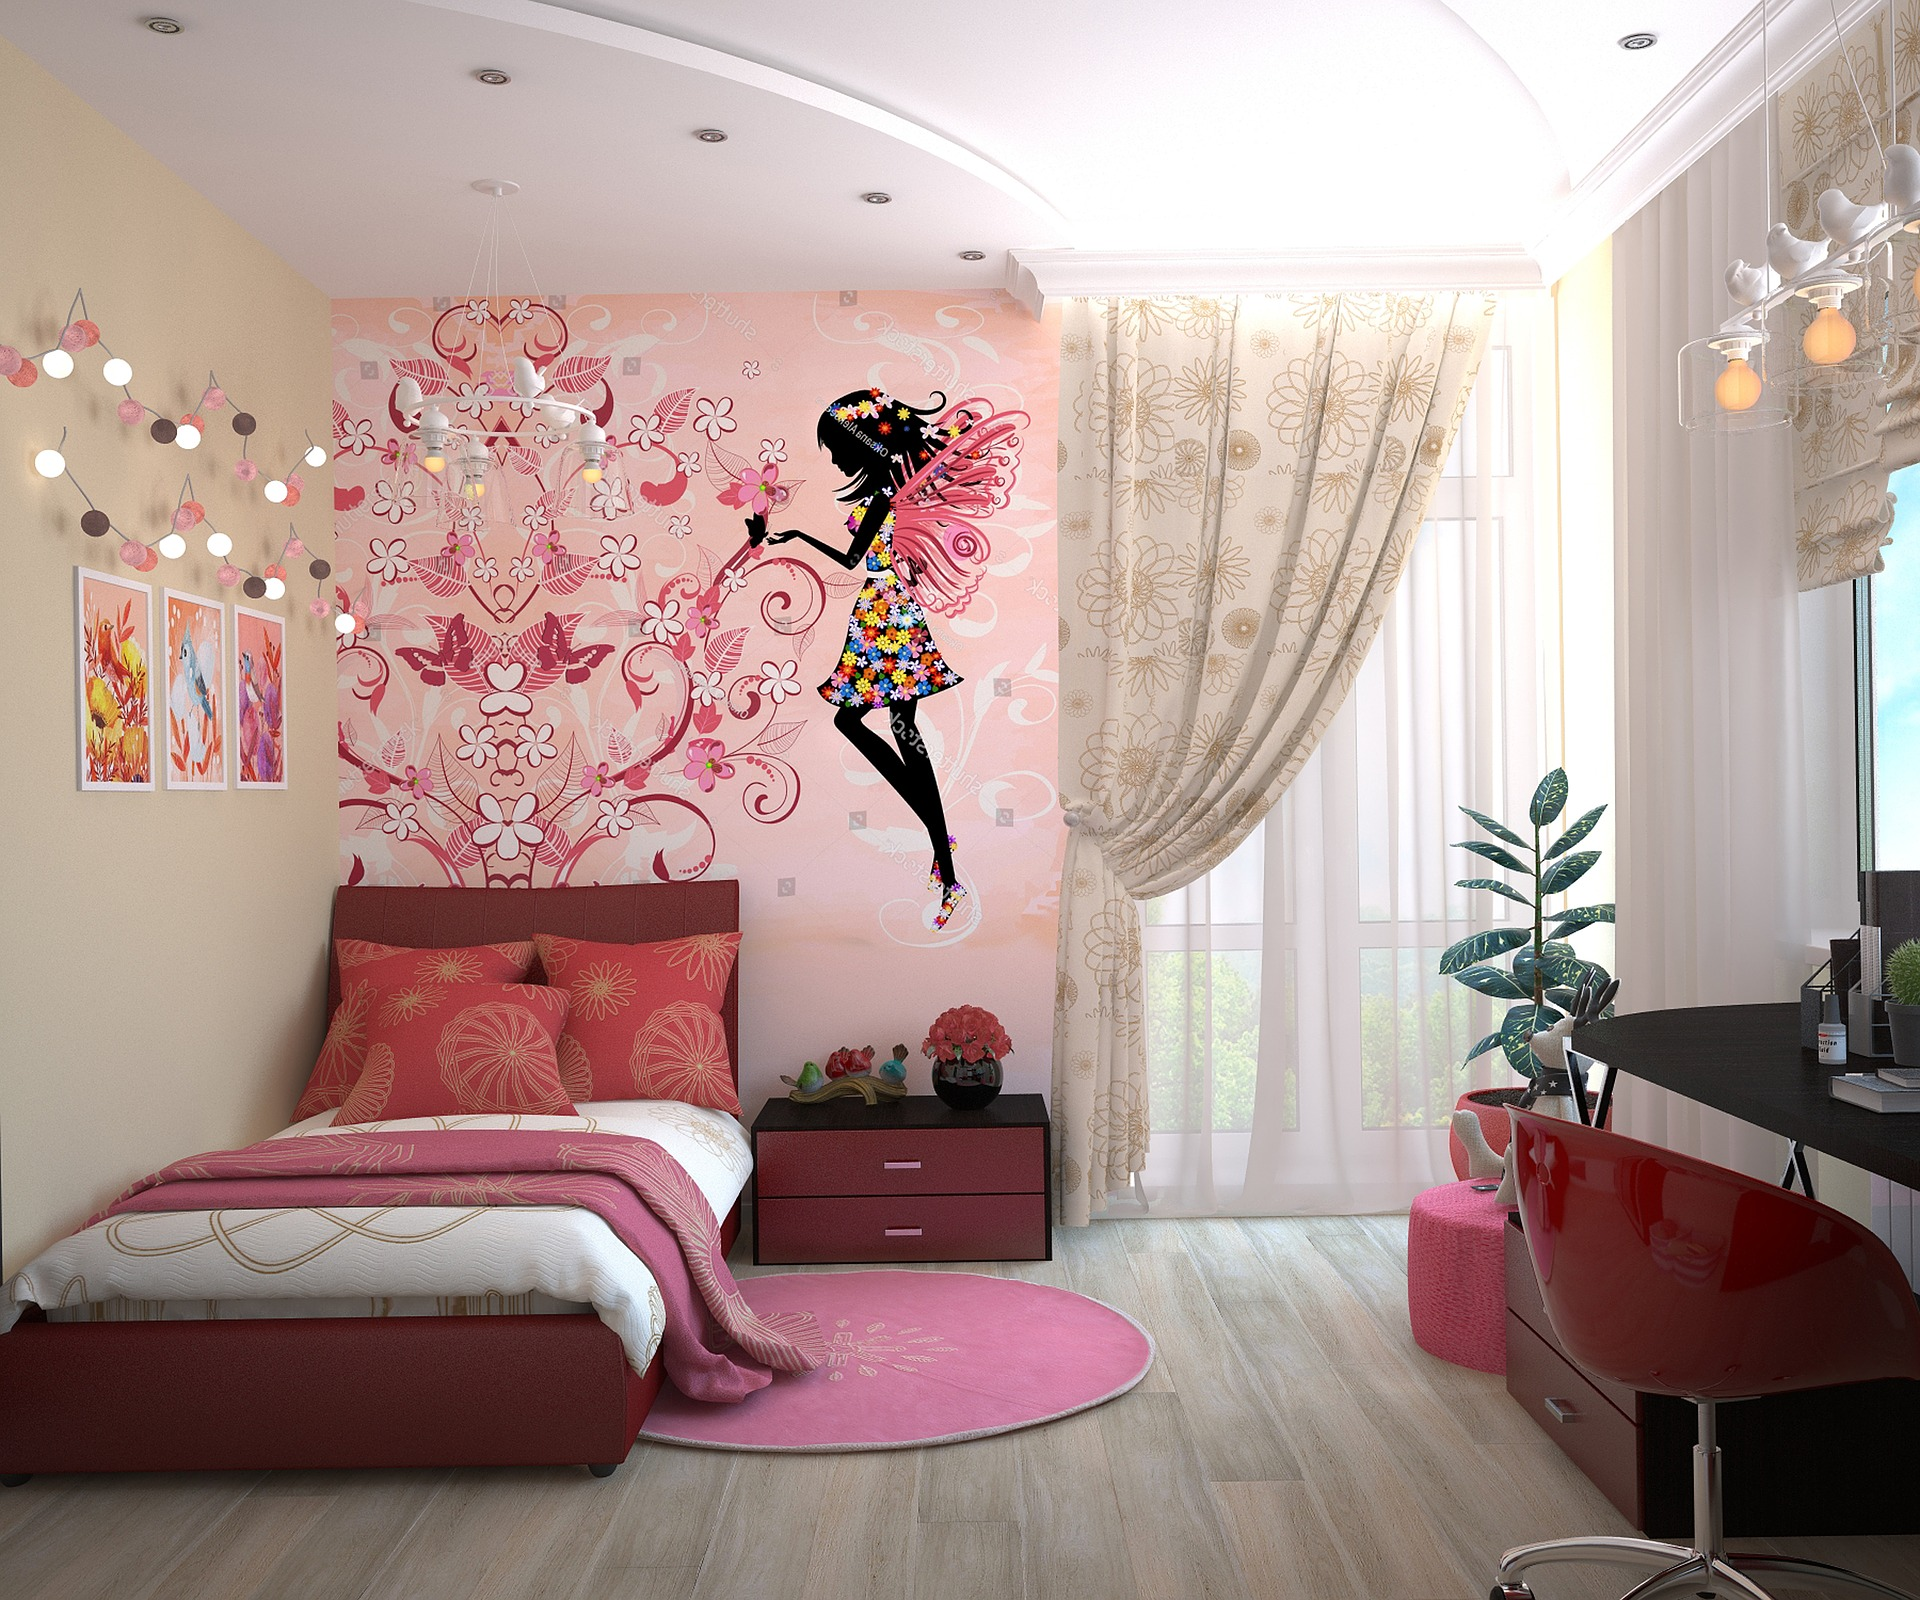 Top Lighting Ideas For Kids Bedrooms